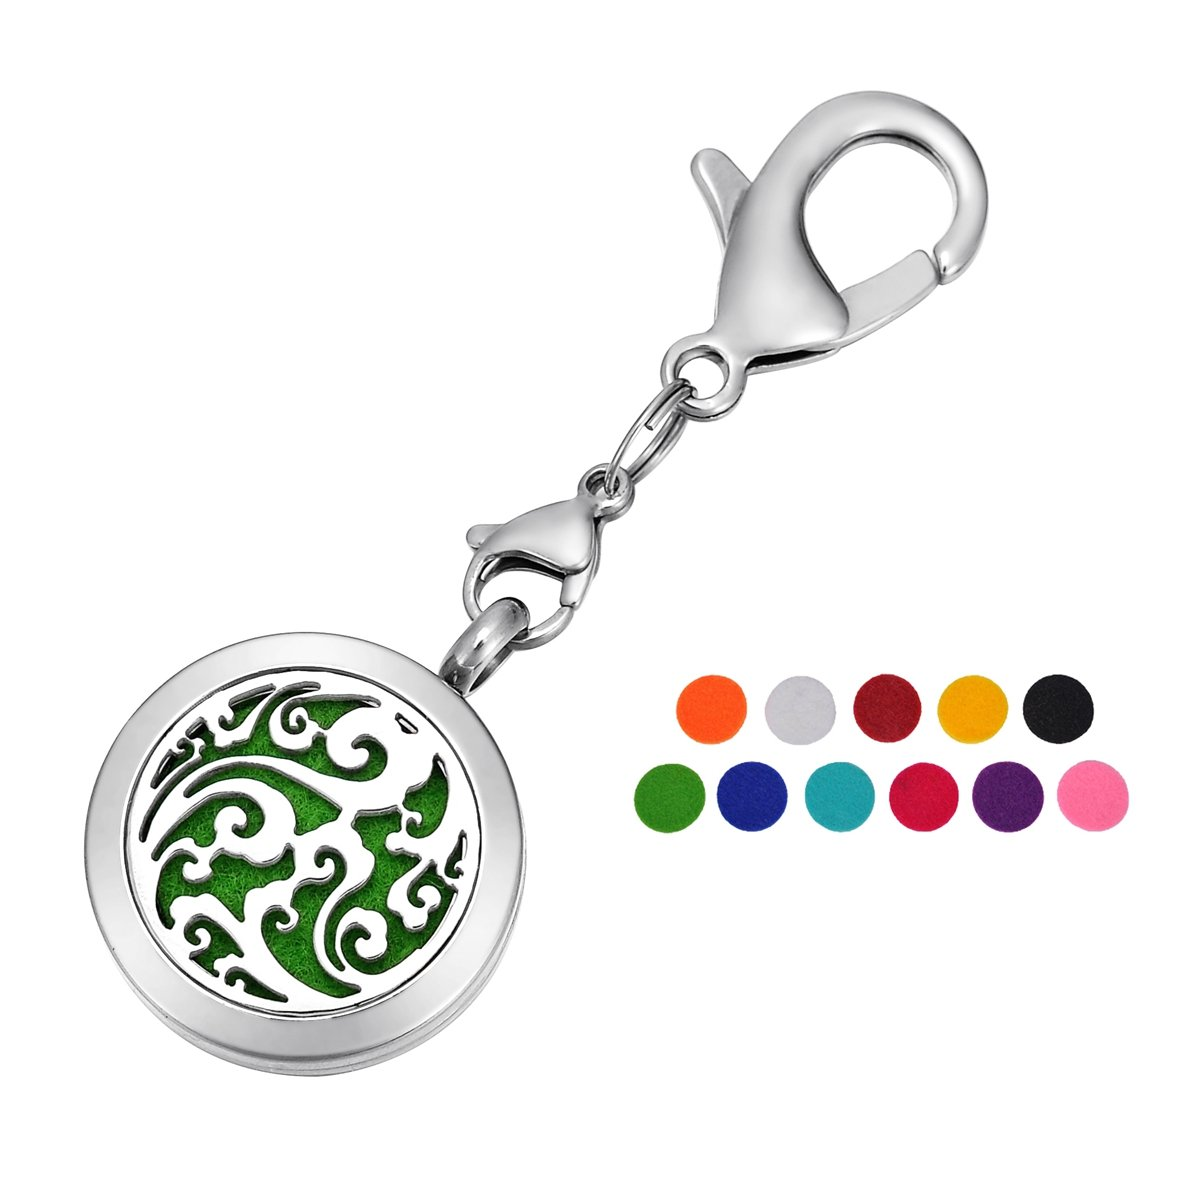 HOUSWEETY Aromatherapy Essential Oil Diffuser Necklace Keychain Key Ring Locket Jewelry with 11 Refill Pads HOUSWEETYB104689+B110351